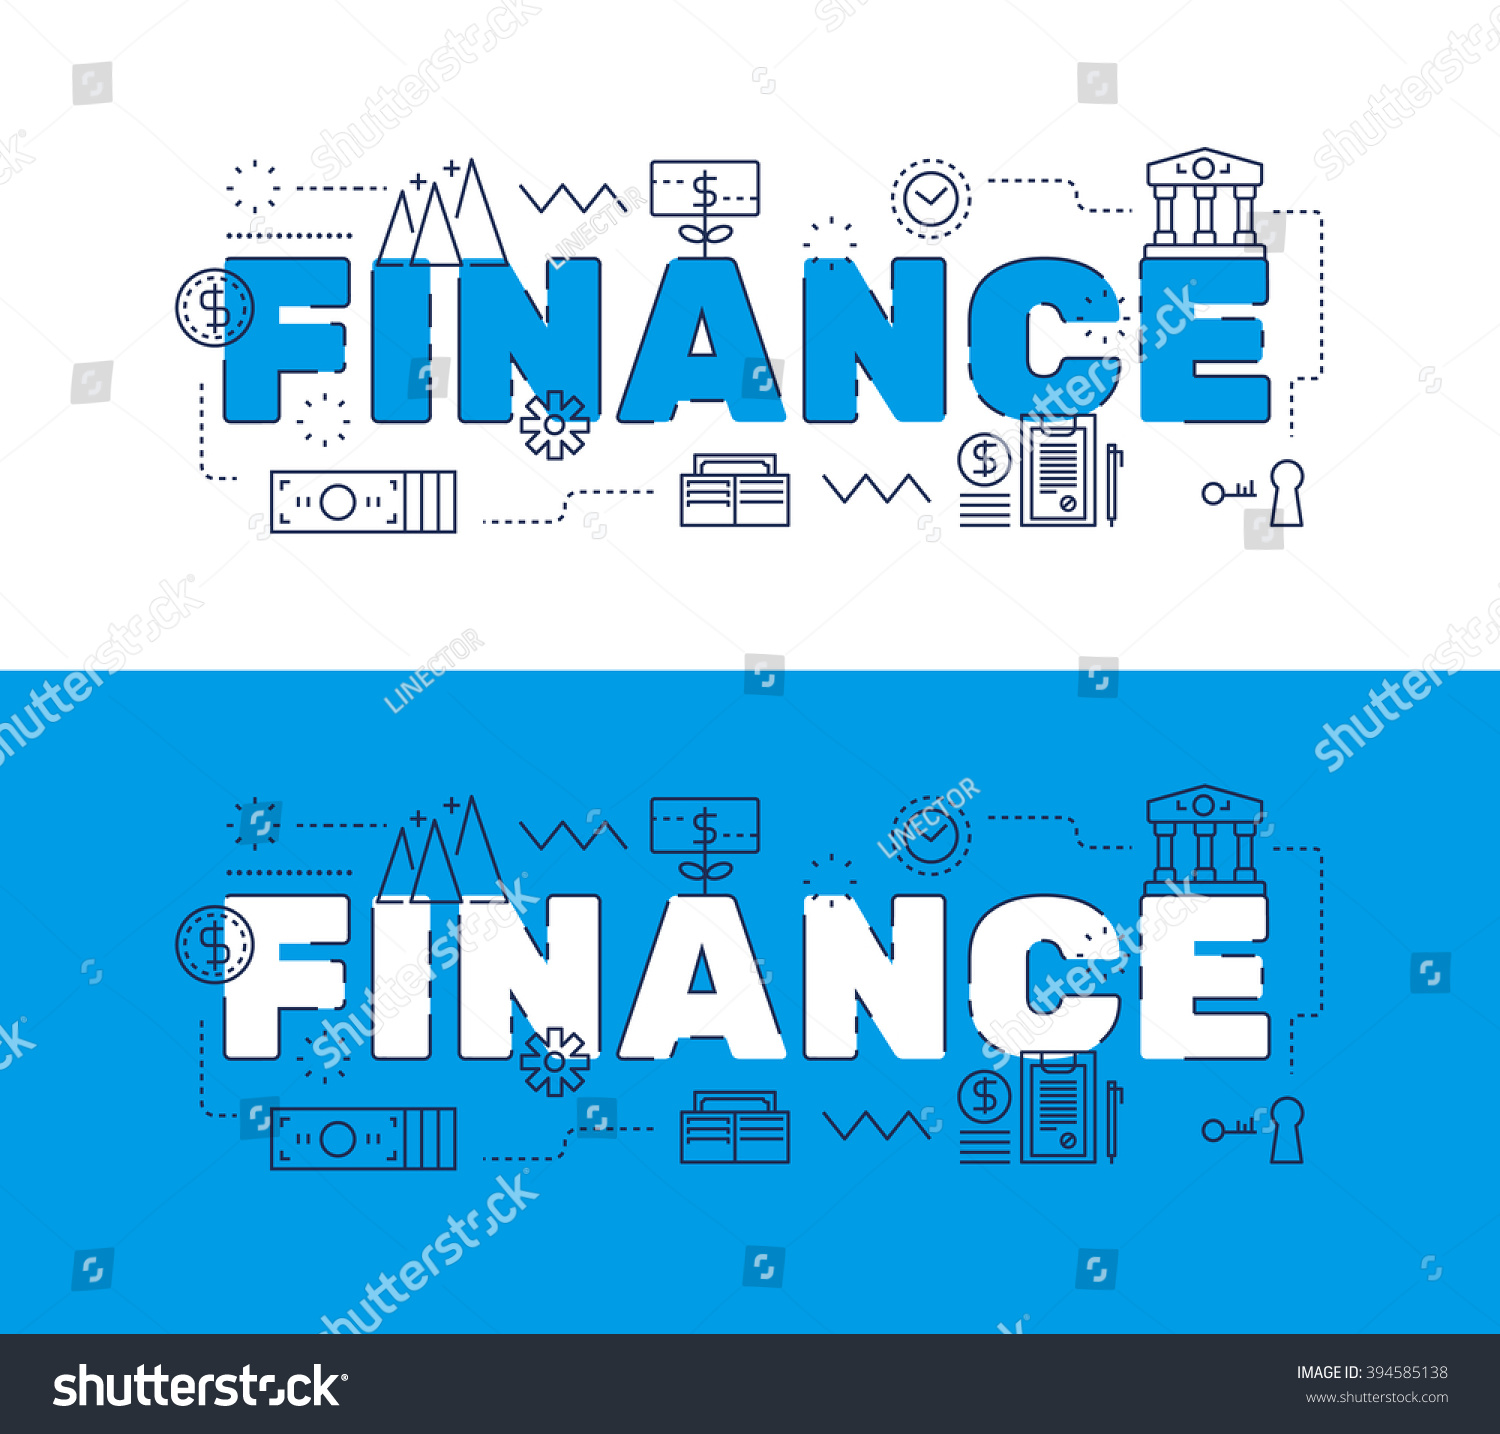 Finance Words: Line Icons Design Words Finance Elements Stock Vector